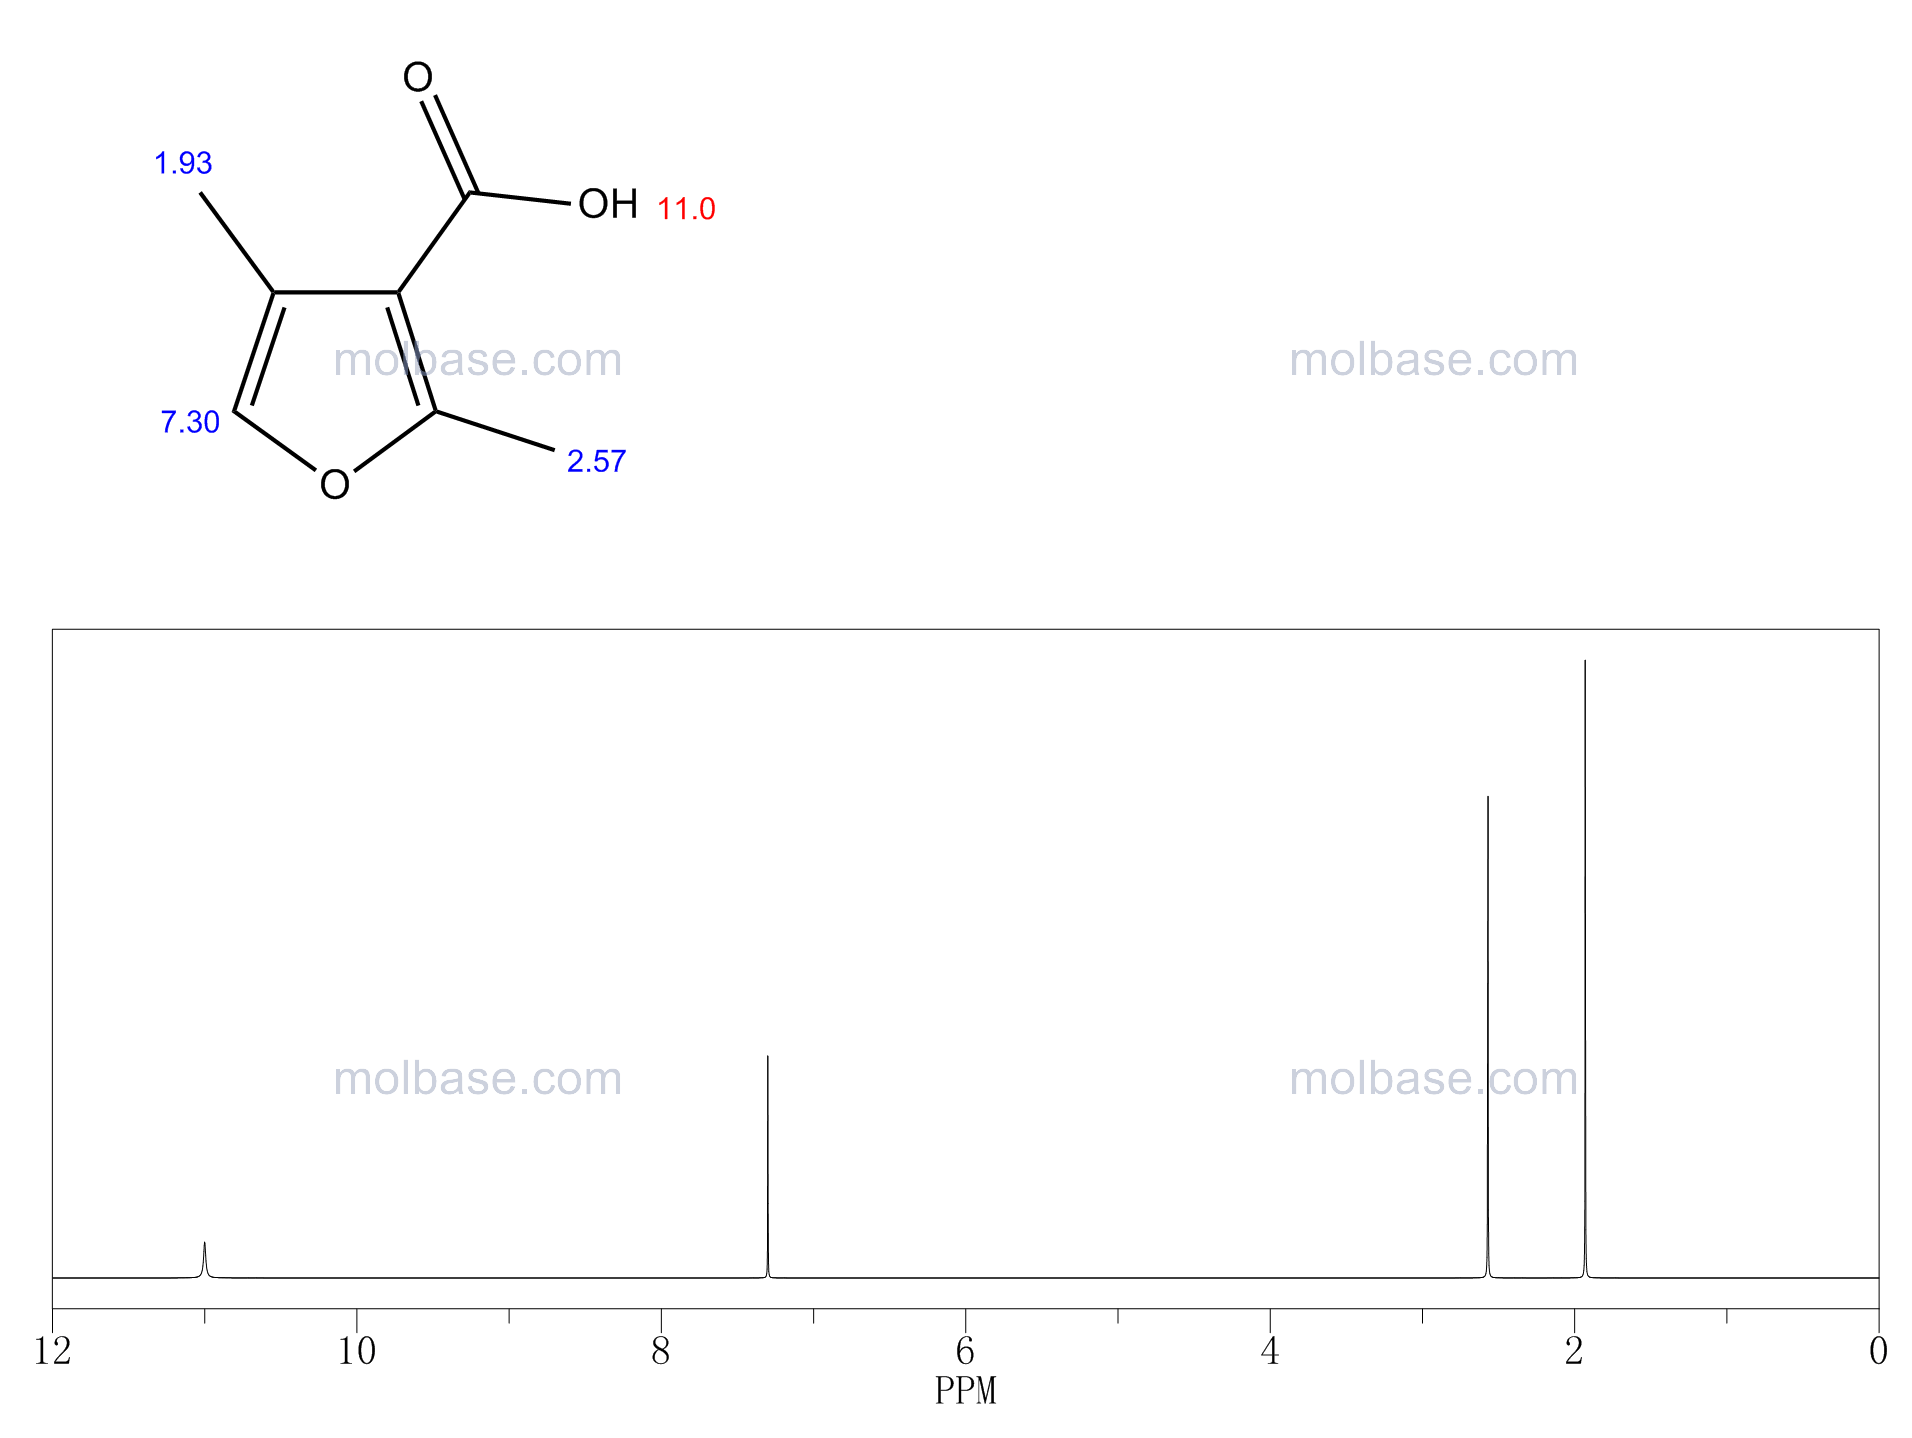 2,4-dimethylfuran-3-carboxylic acid NMR spectra analysis, Chemical CAS NO. 15058-72-7 NMR spectral analysis, 2,4-dimethylfuran-3-carboxylic acid C-NMR spectrum